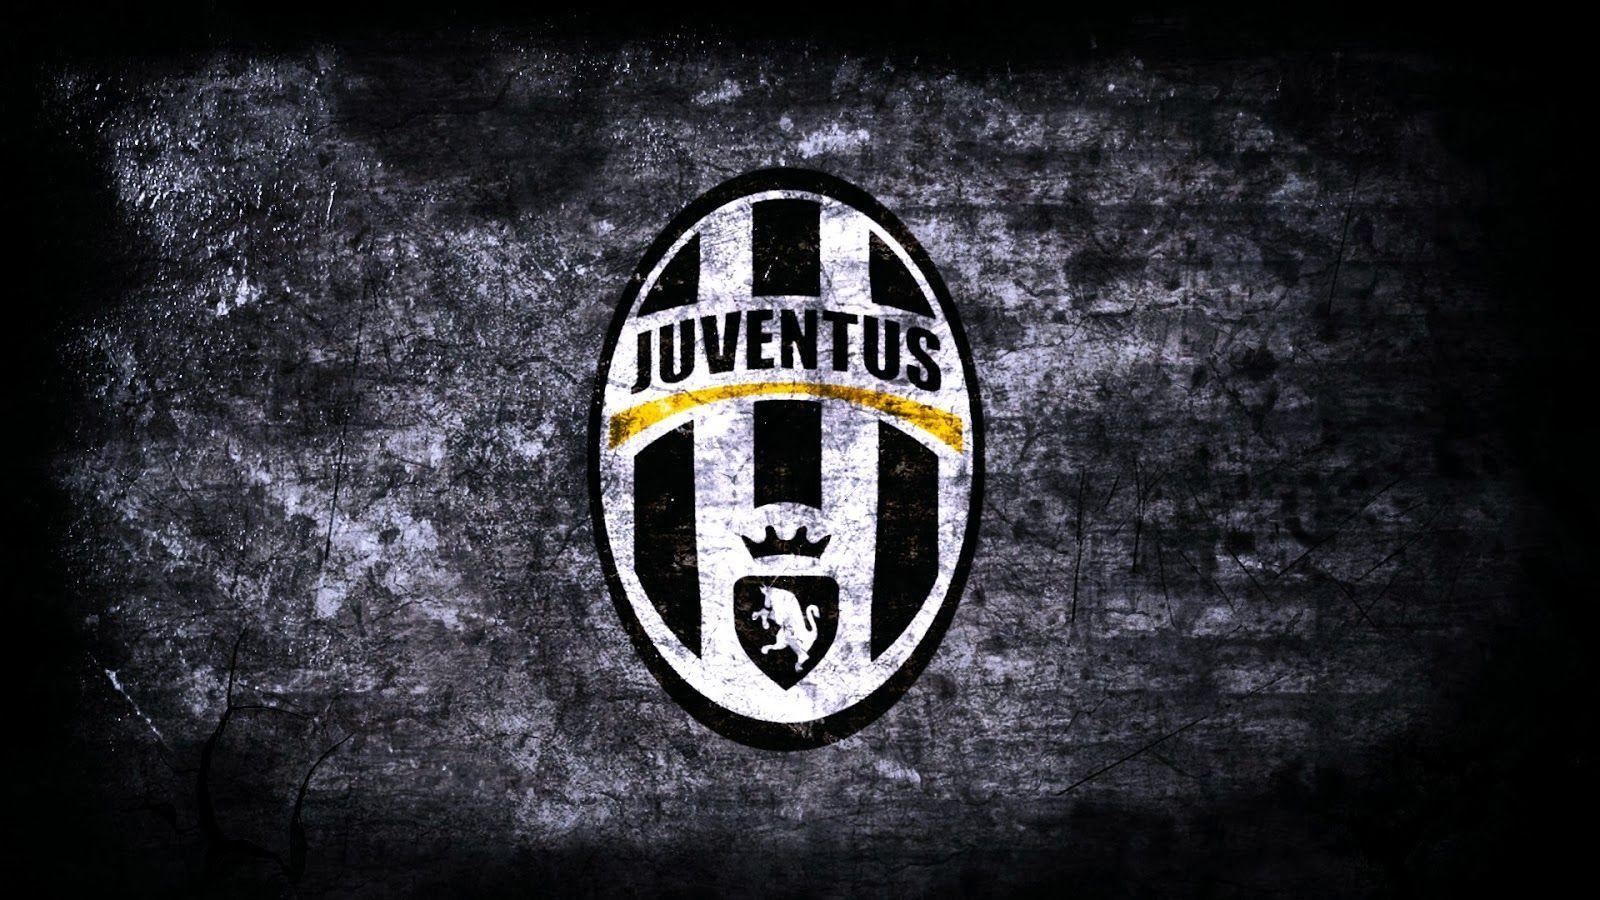 juventus - photo #8